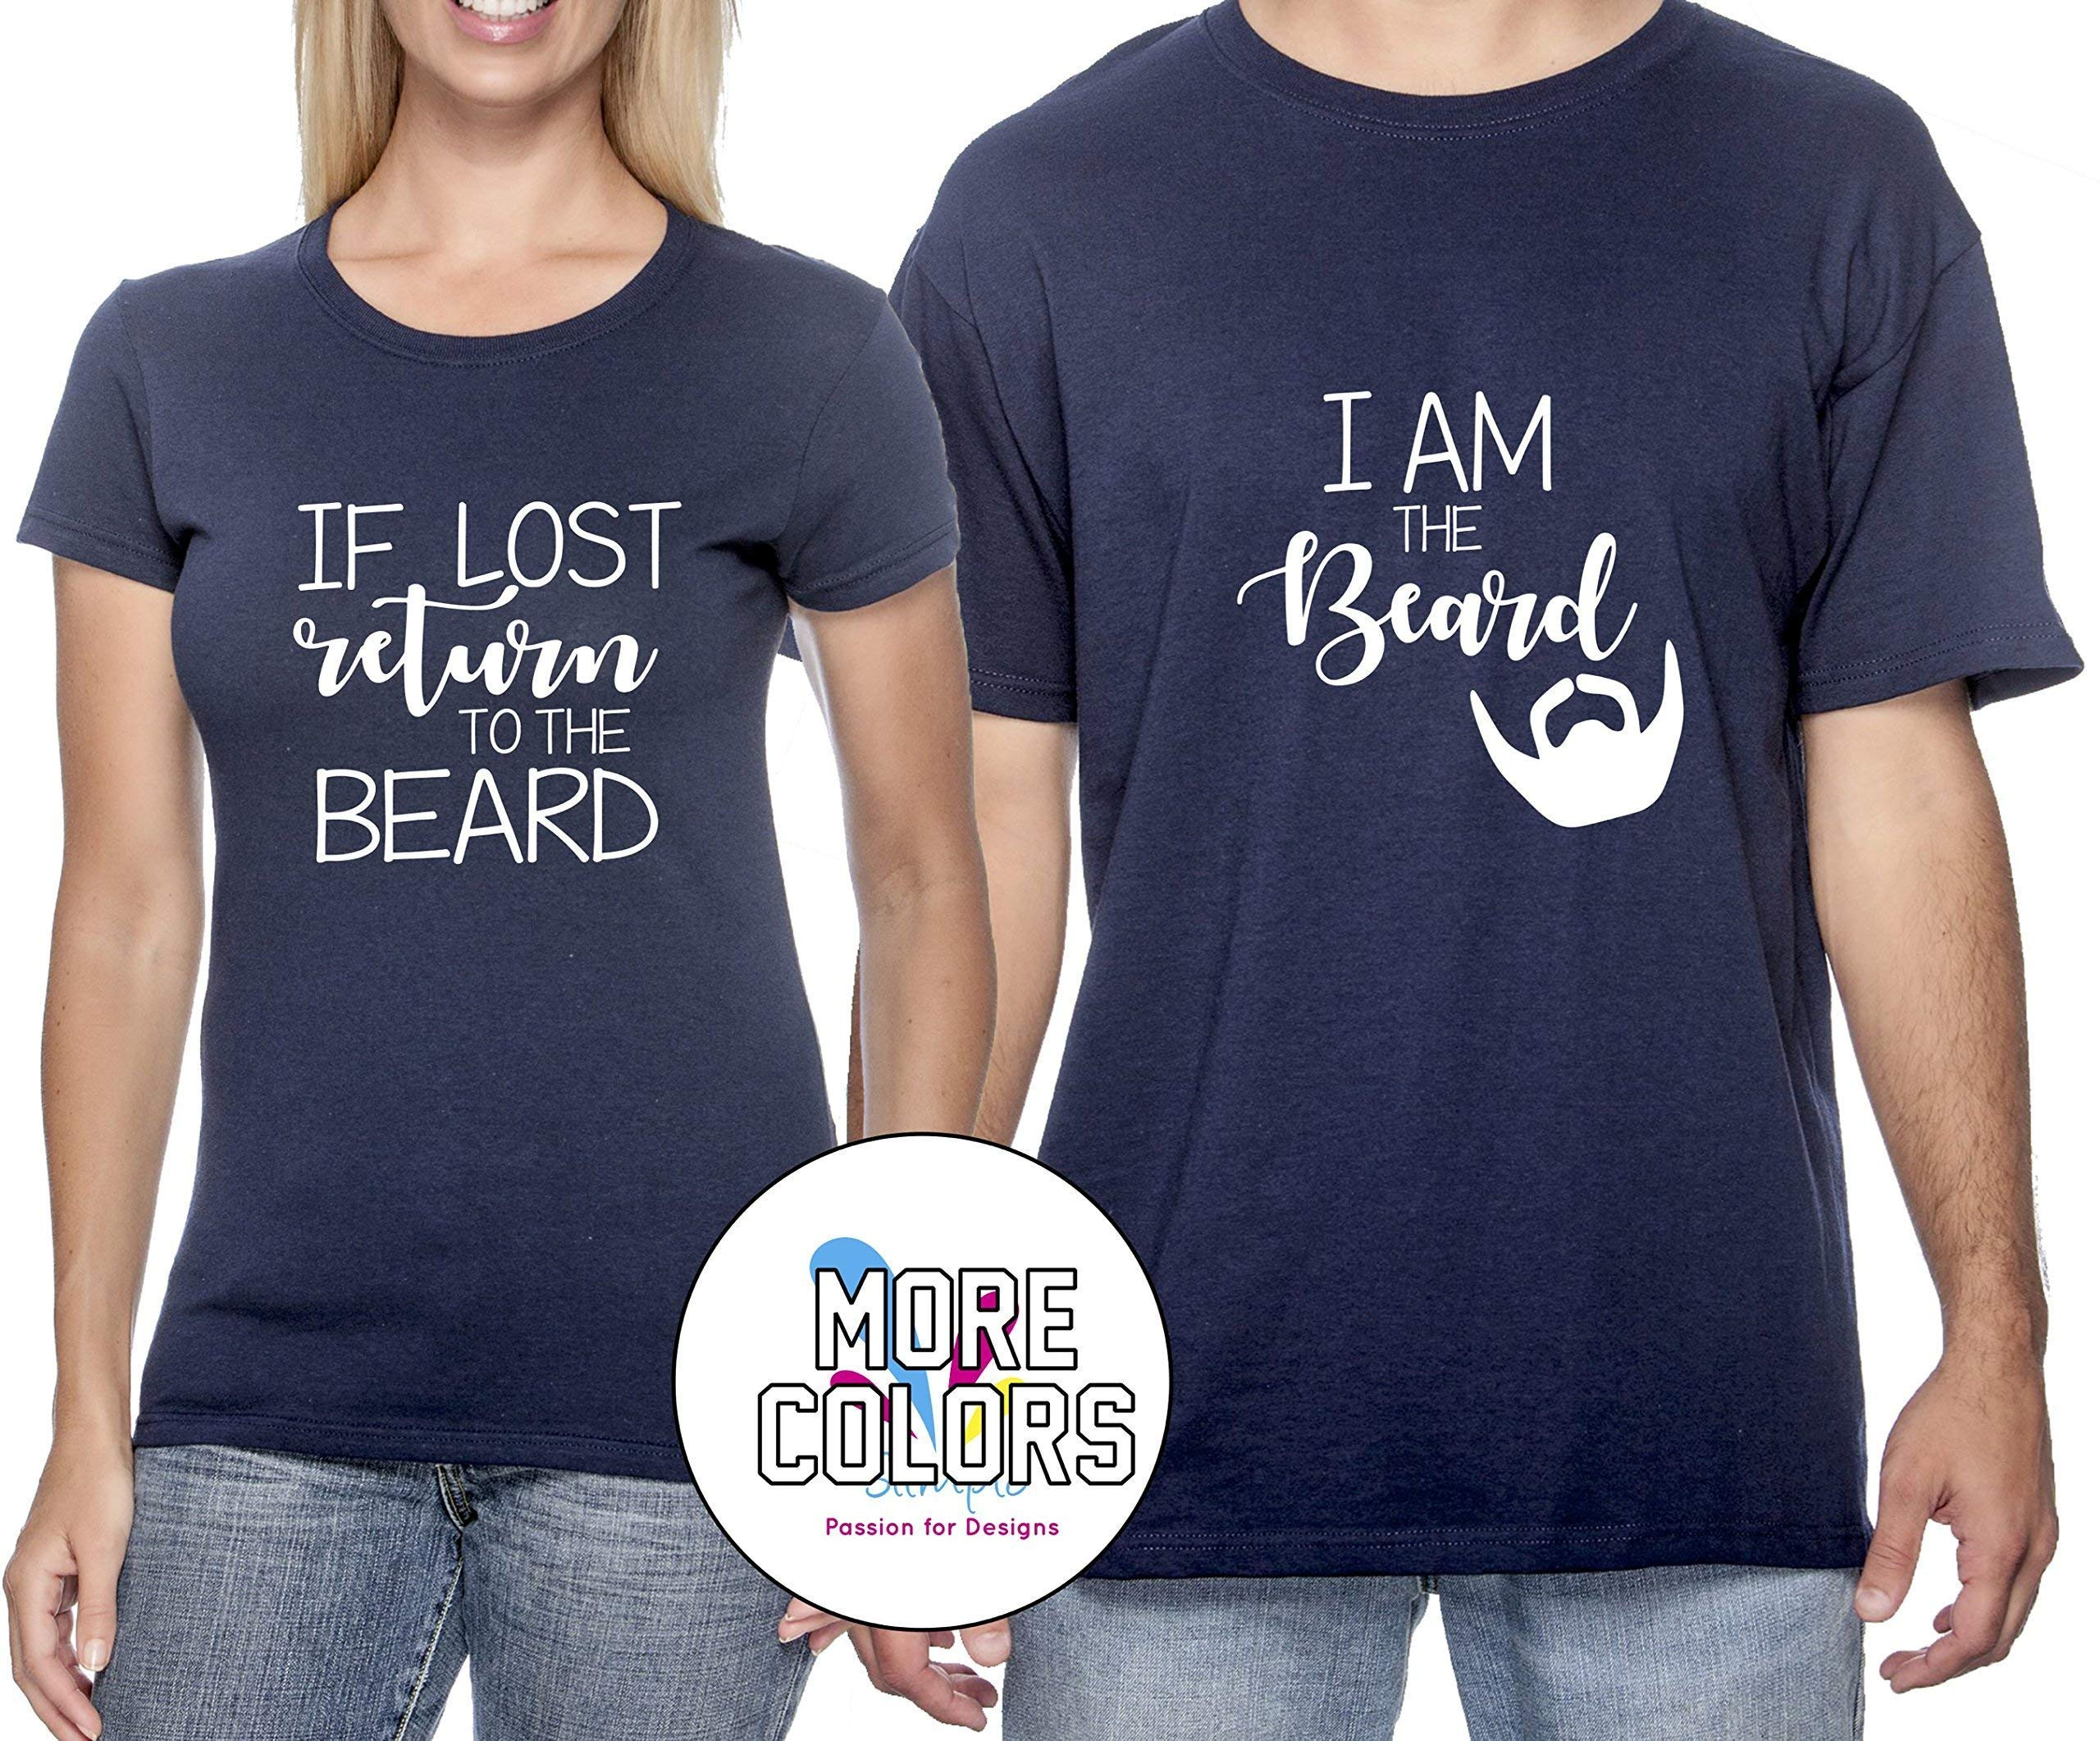 b62dc16b8 If Lost Please Return to the Beard Couple T Shirt - Funny Matching Couples T -